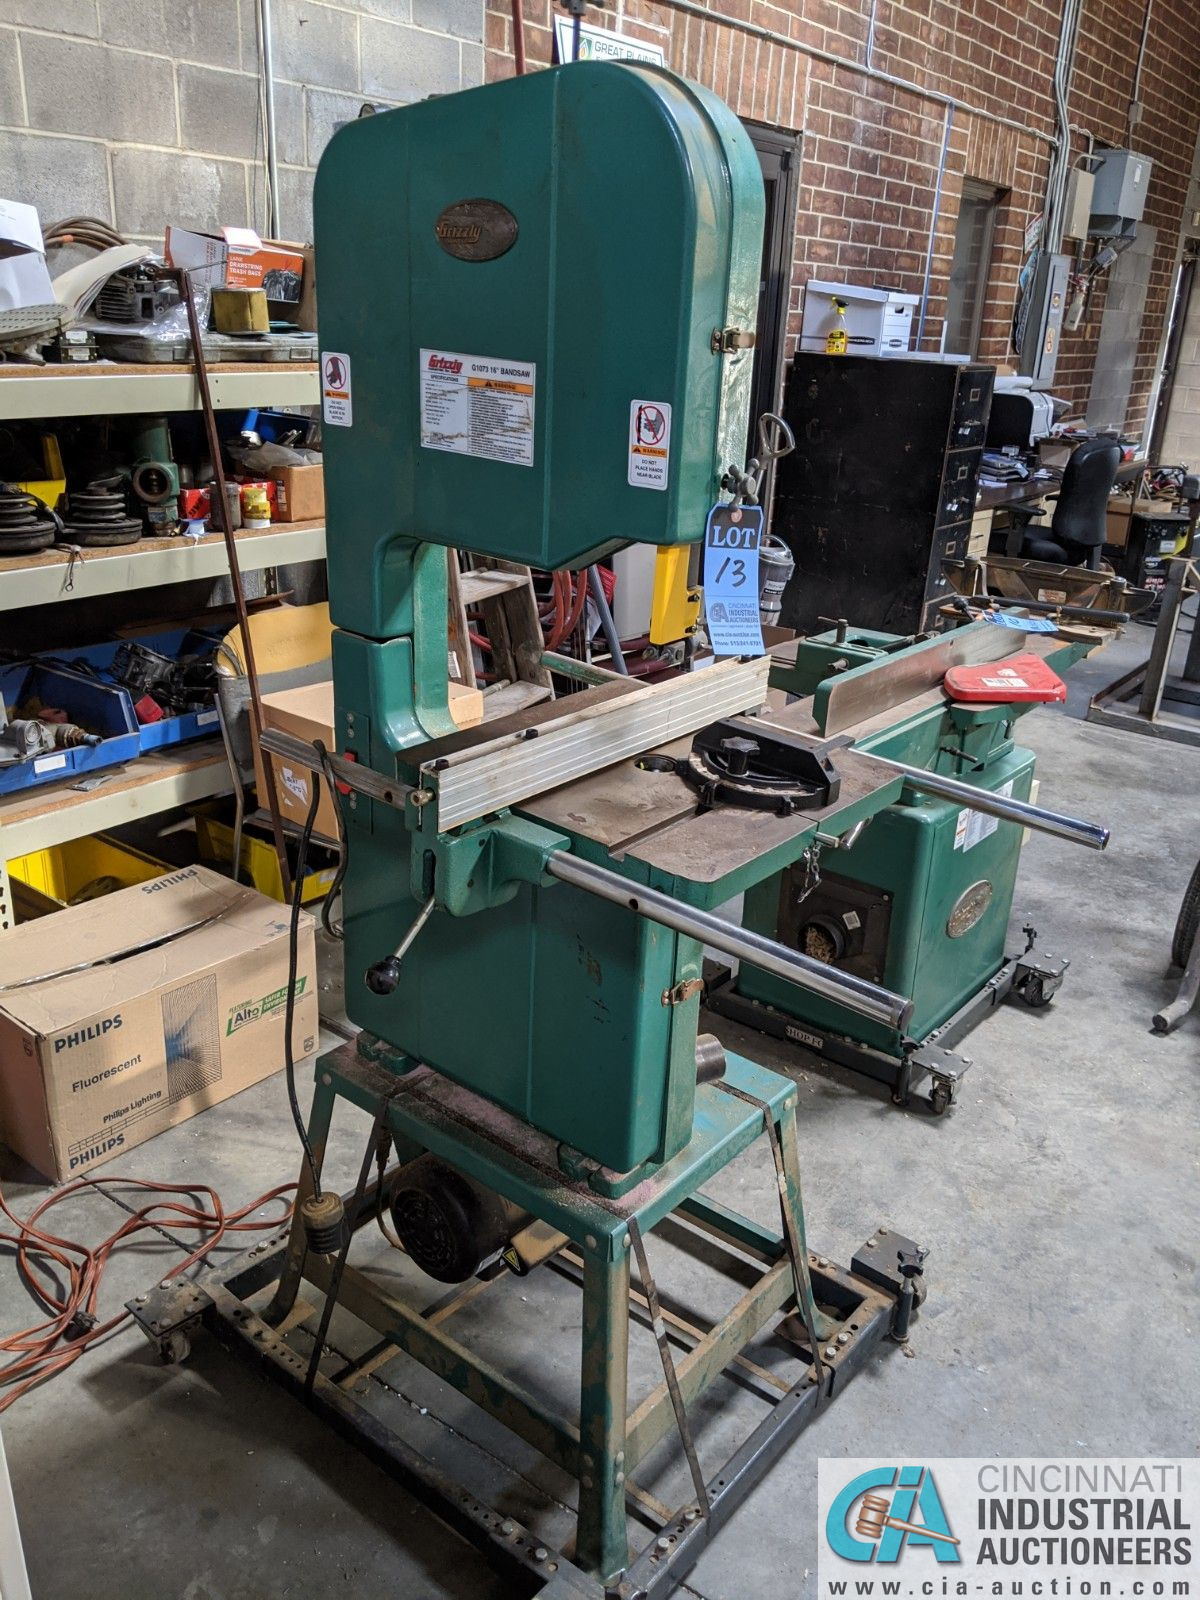 """16"""" GRIZZLY MODEL G1073 VERTICAL BAND SAW; S/N 055901, 17"""" X 17"""" TABLE, 2-HP, SINGLE PHASE (8635 - Image 2 of 4"""